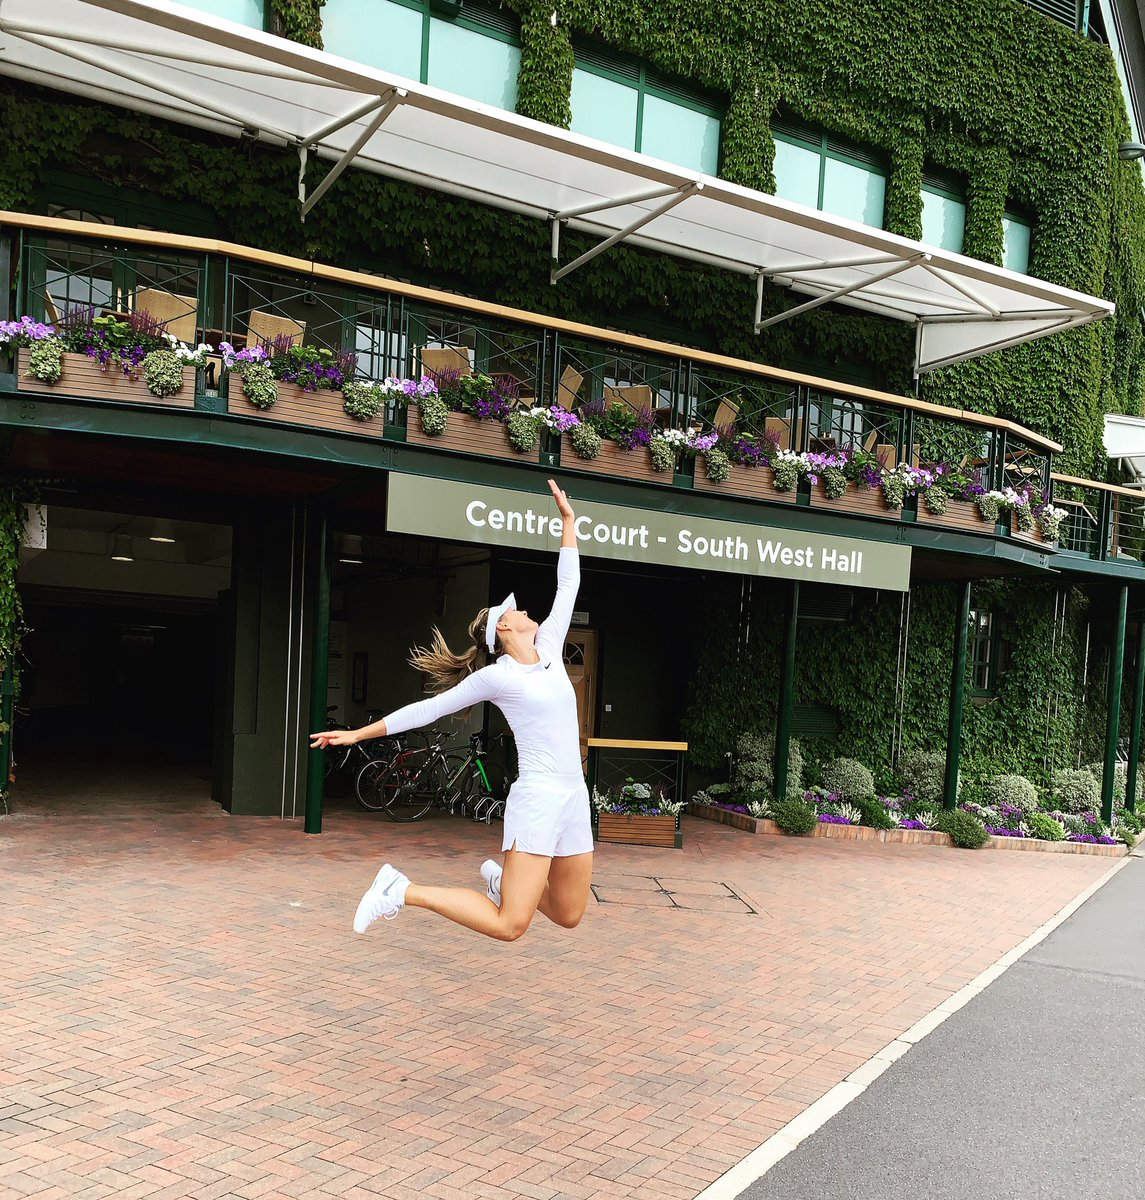 There's just really nothing like it ????????‍♀️ @Wimbledon https://t.co/ABSVr8j9Me